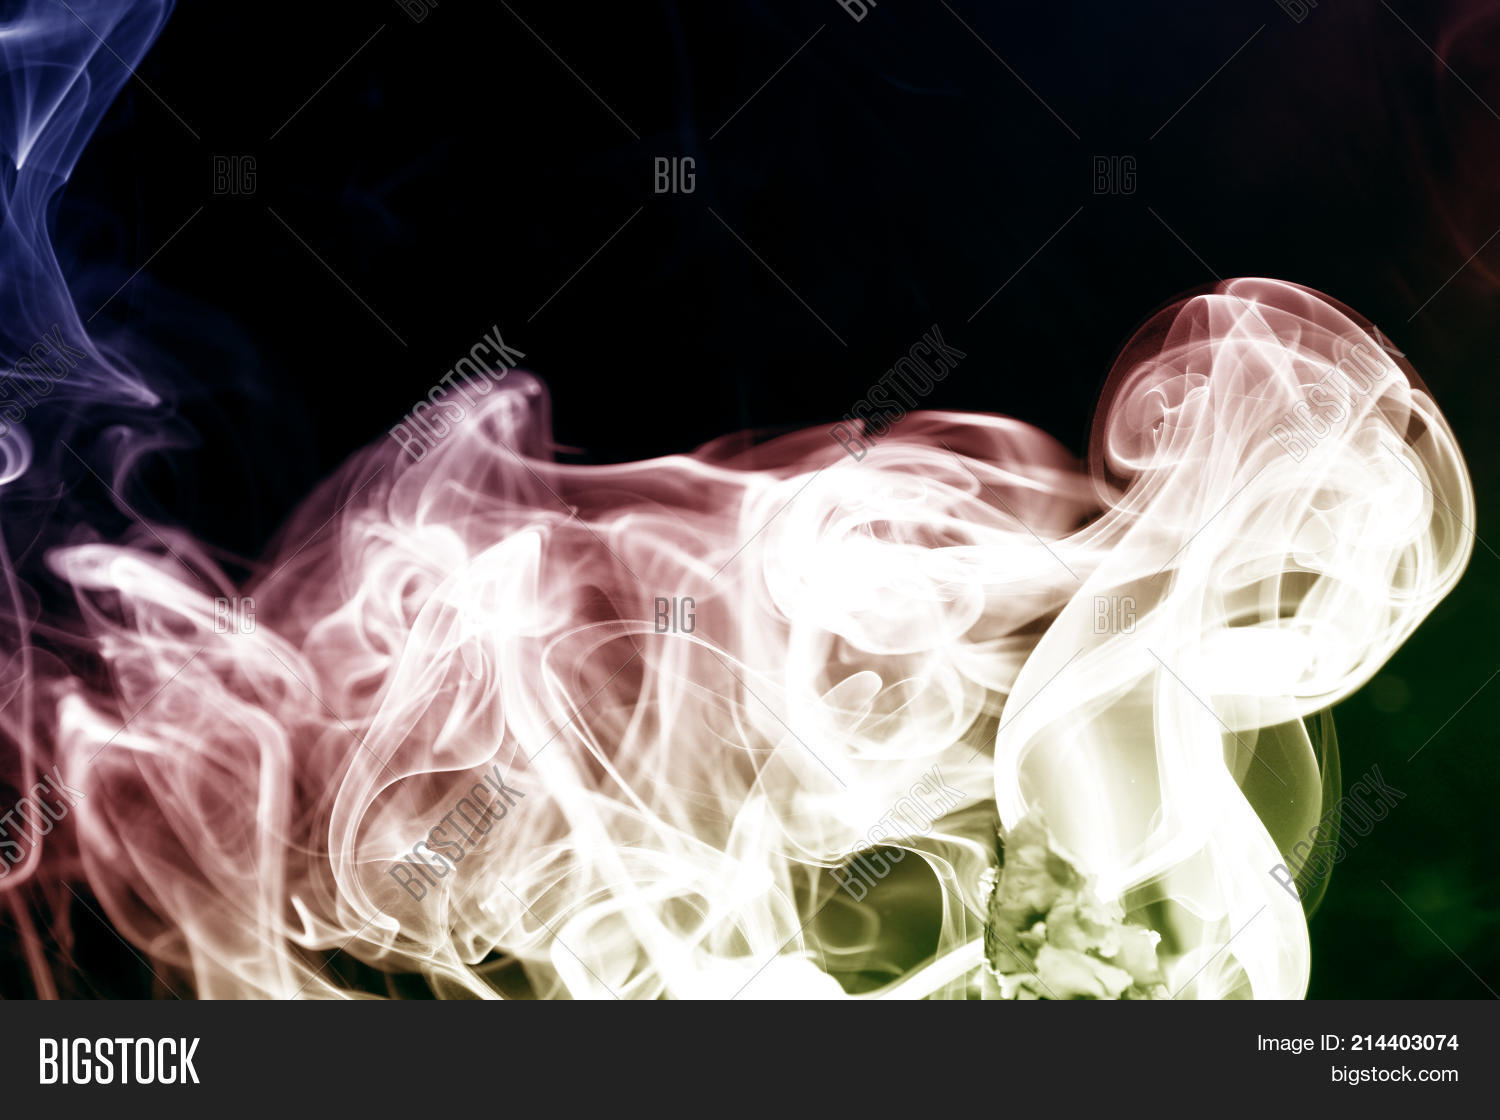 Smoke Abstract As Wallpaper Is A Collection Of Airborne Solid And Liquid Particulates